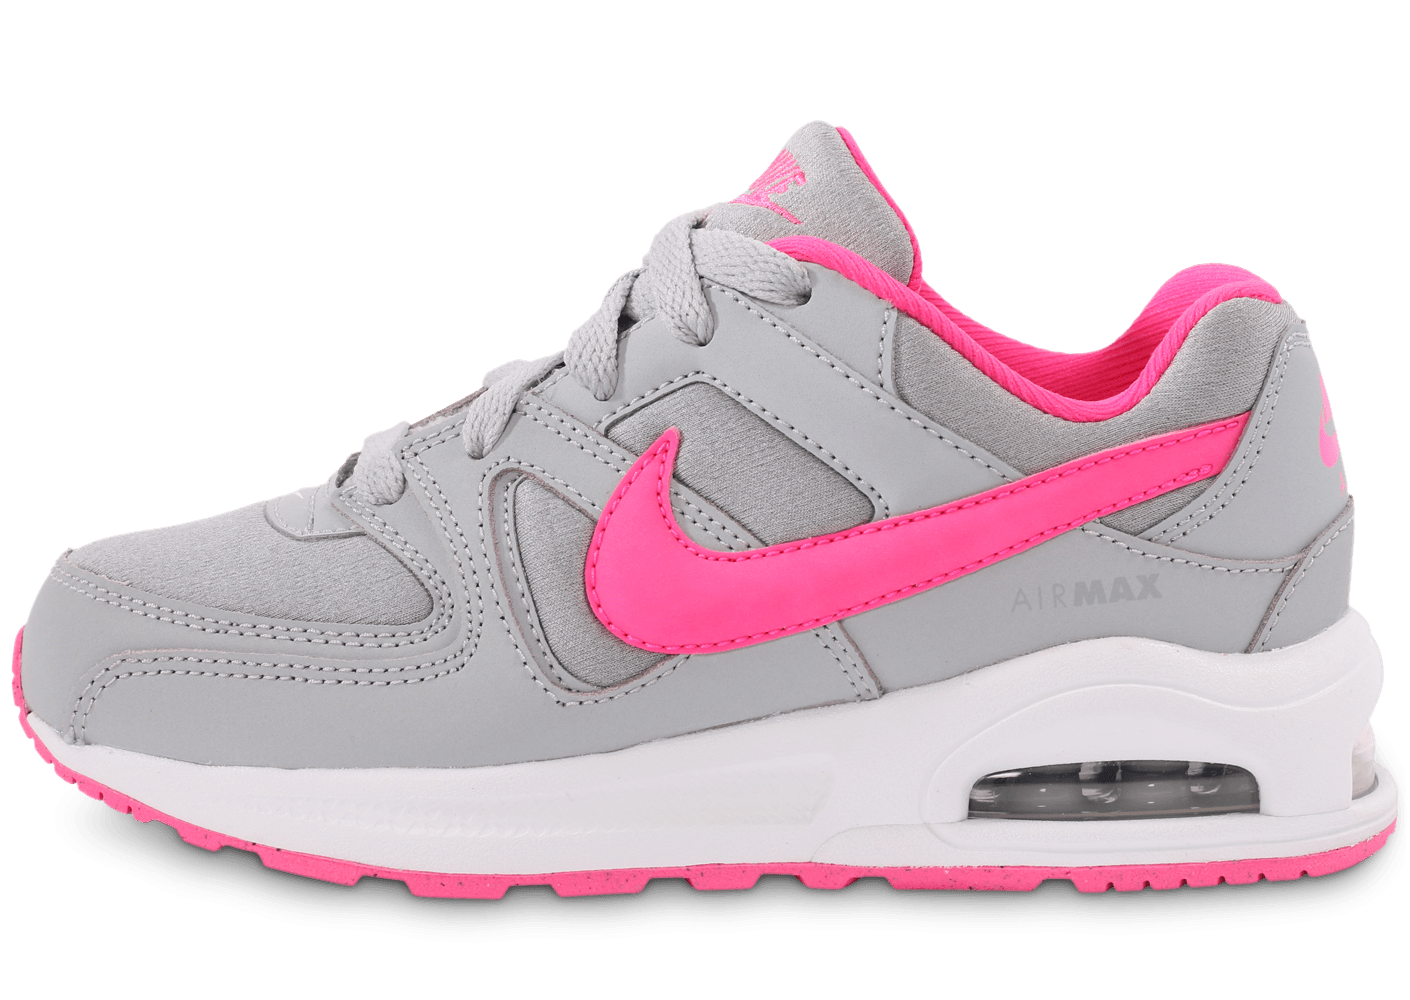 nike air max command gris et rose enfant chaussures chaussures chausport. Black Bedroom Furniture Sets. Home Design Ideas